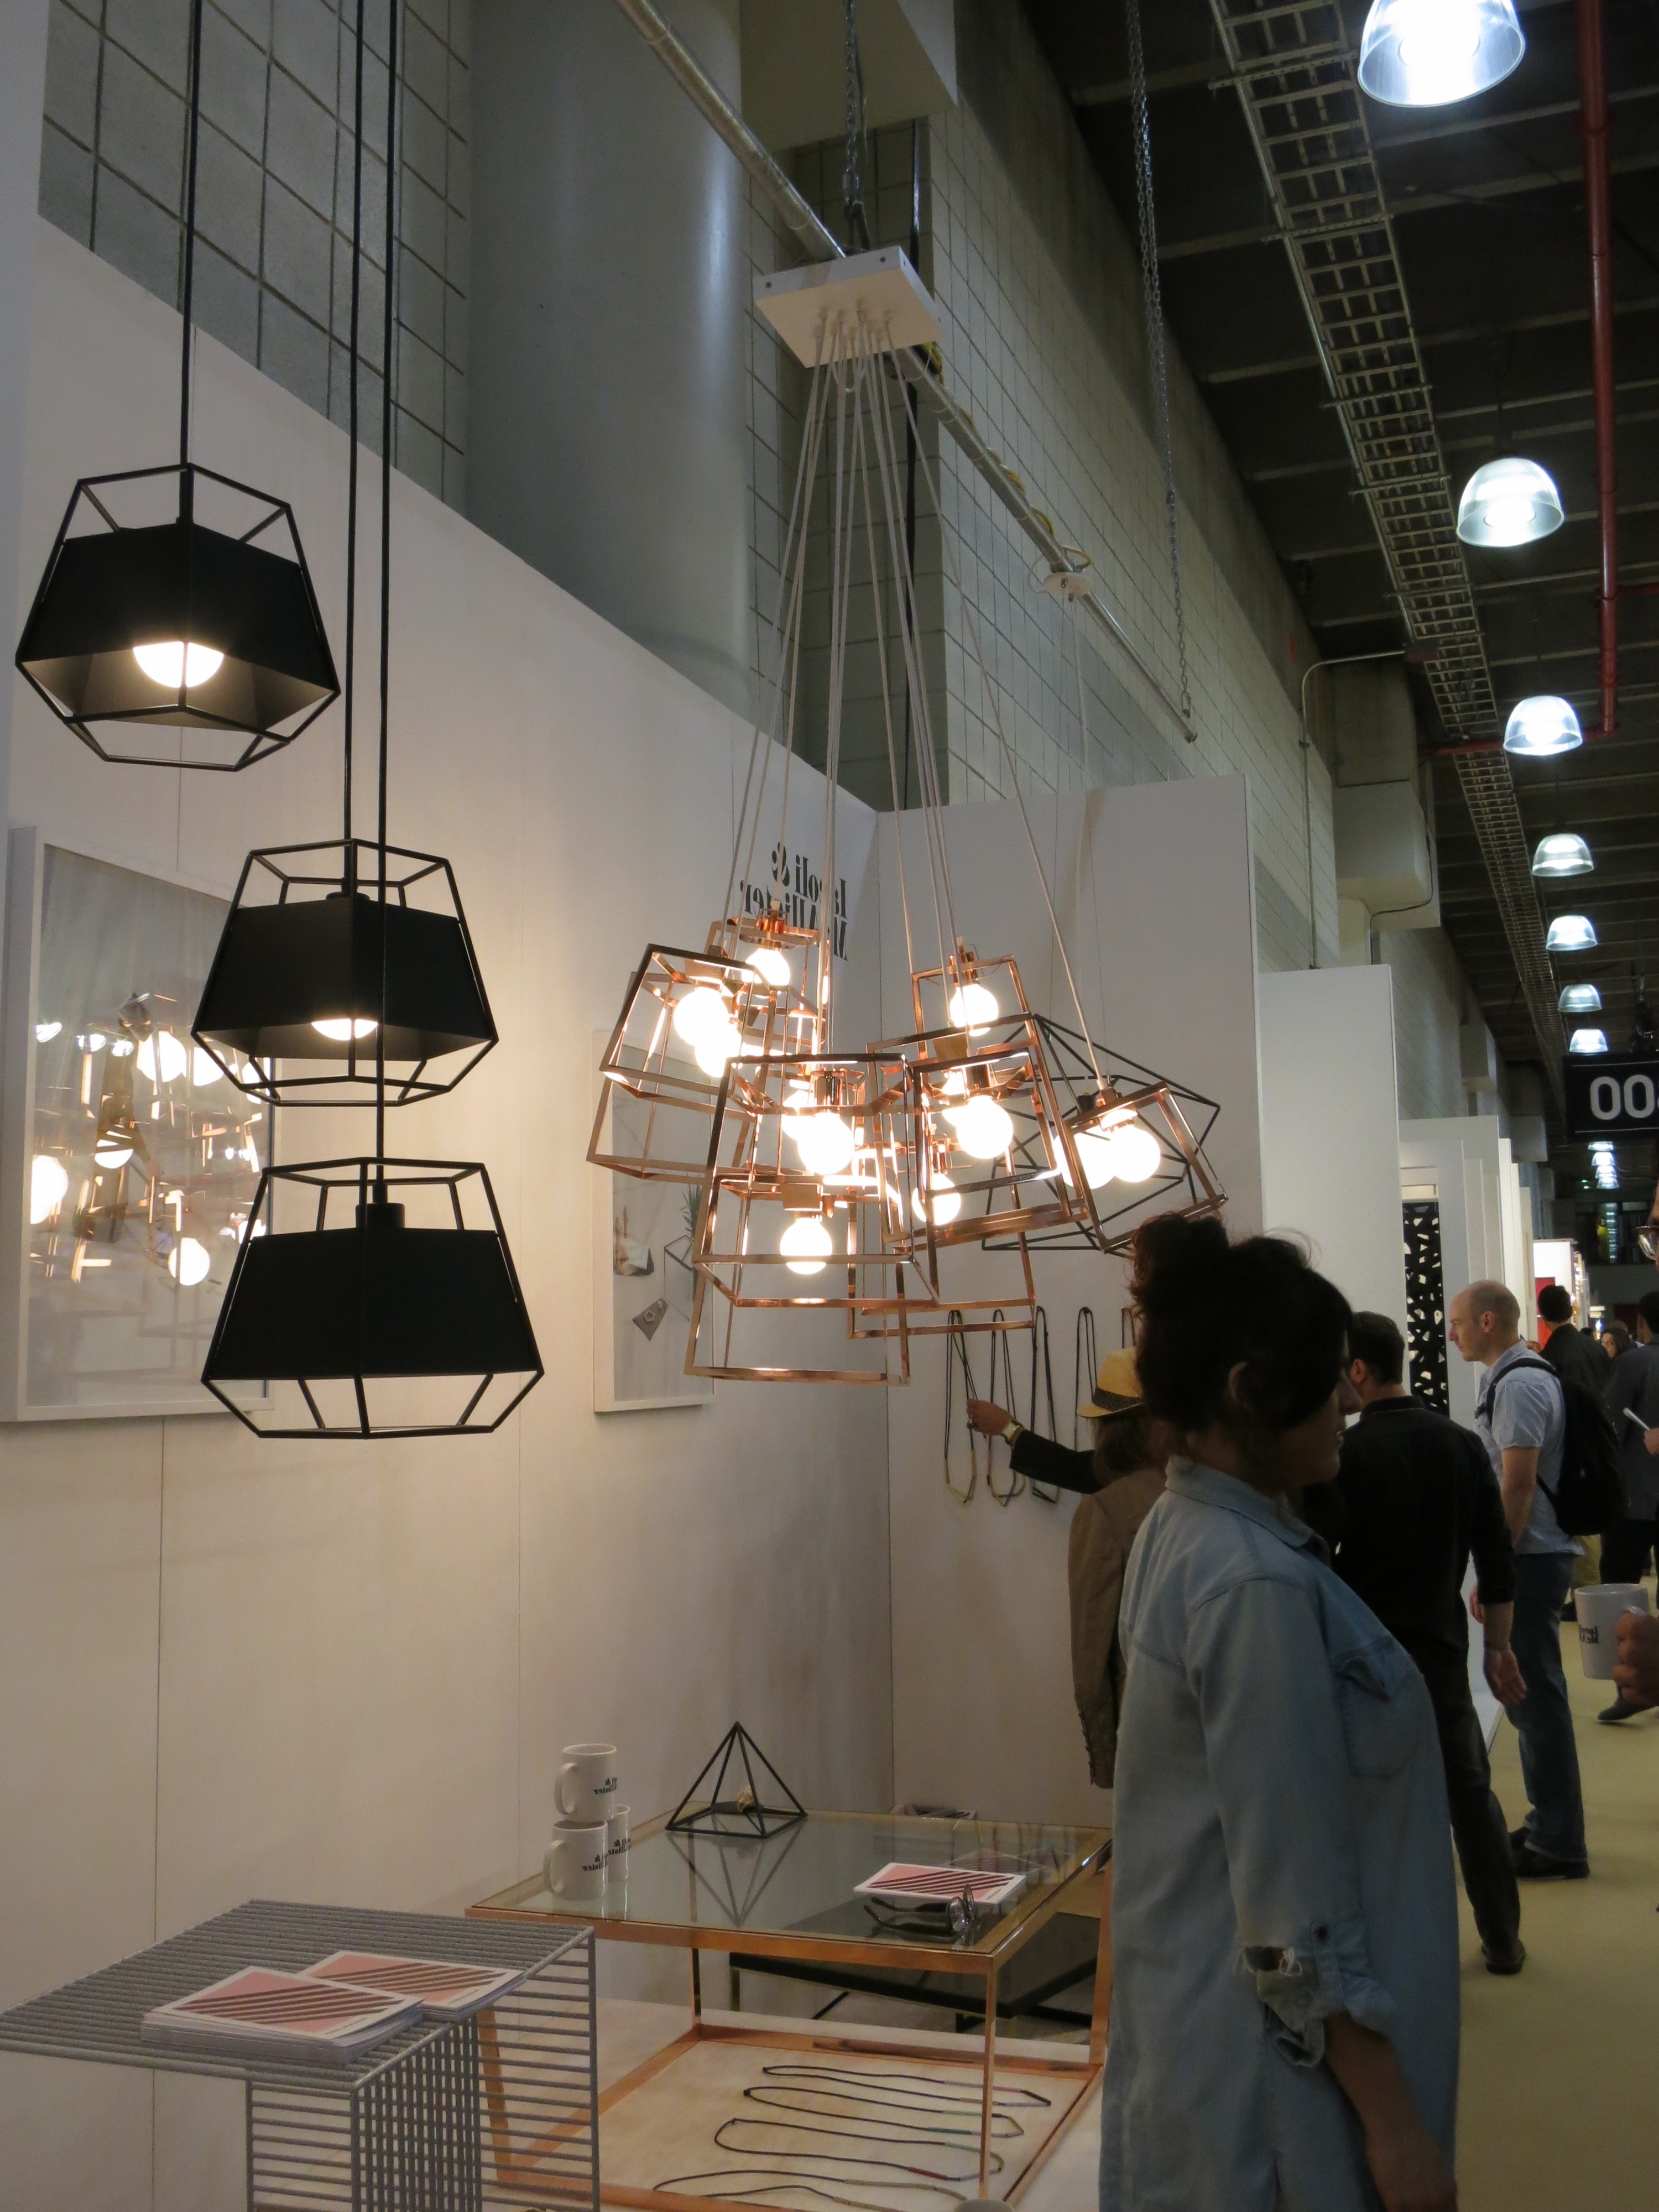 Restoration Hardware Outdoor Hanging Lights With Most Up To Date Schoolhouse Light Fixtures Restoration Hardware Light Fixture (Gallery 5 of 20)